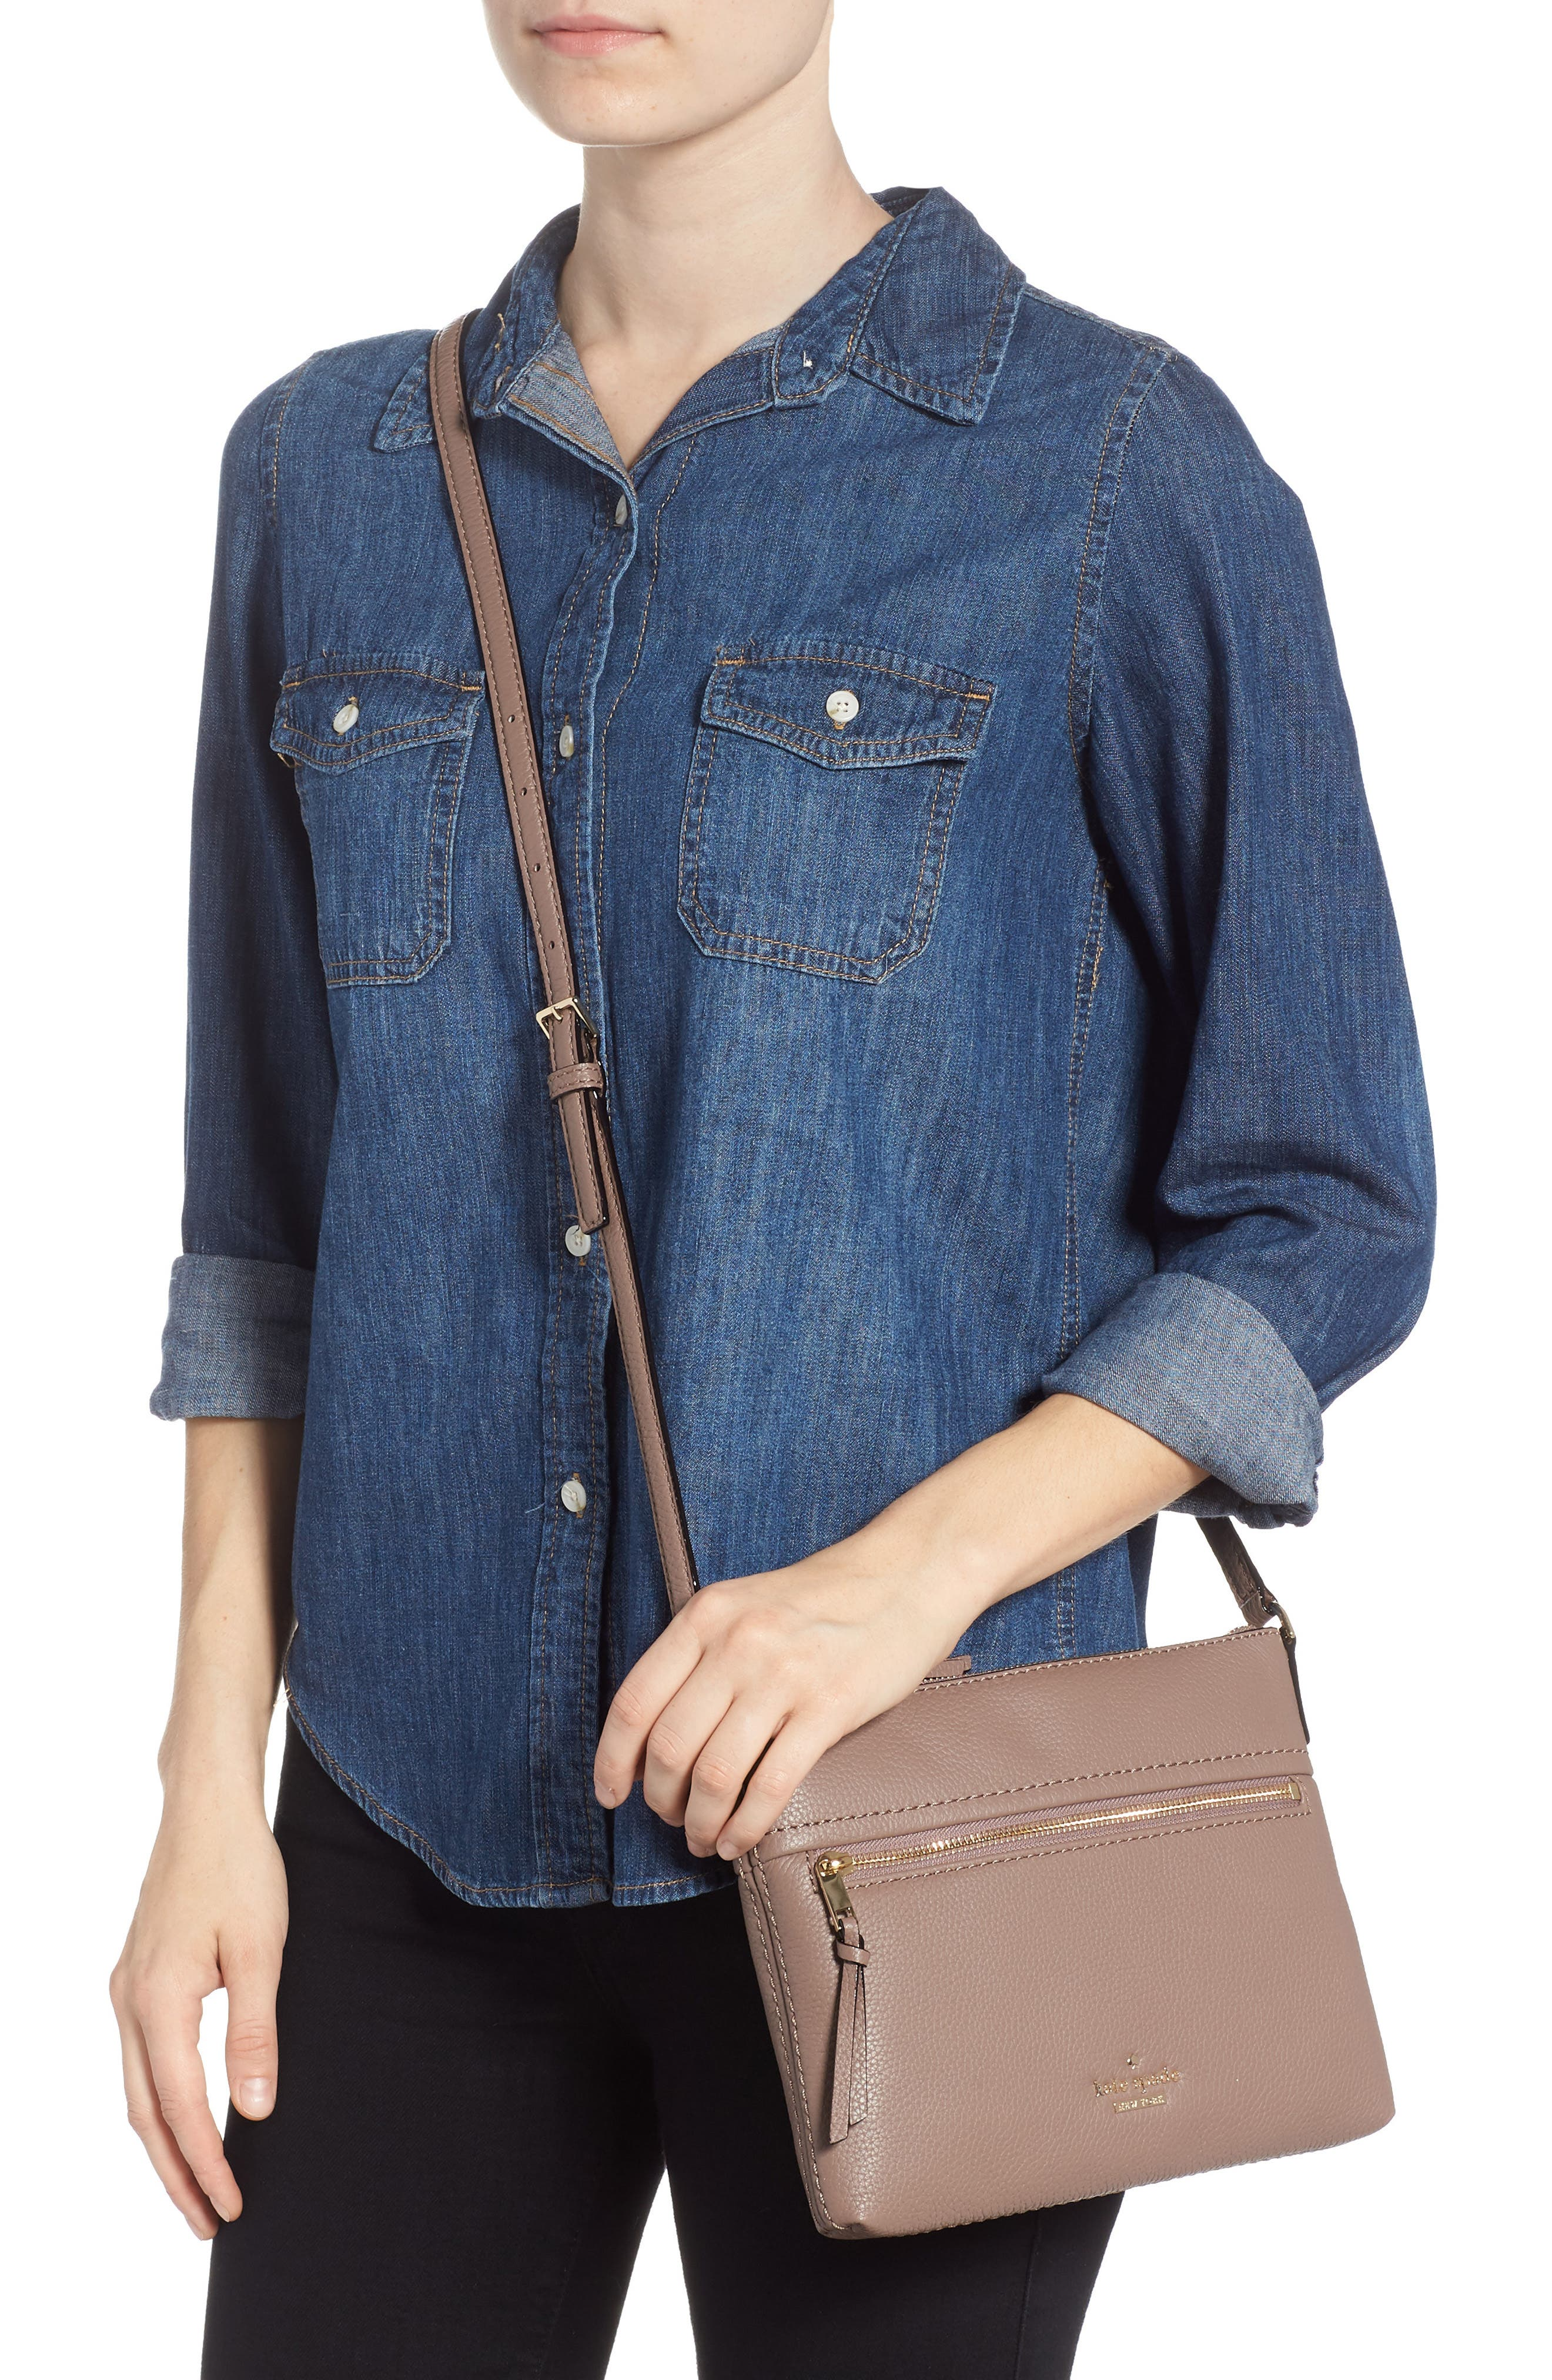 jackson street - gabriele leather crossbody bag,                             Alternate thumbnail 2, color,                             BROWNSTONE